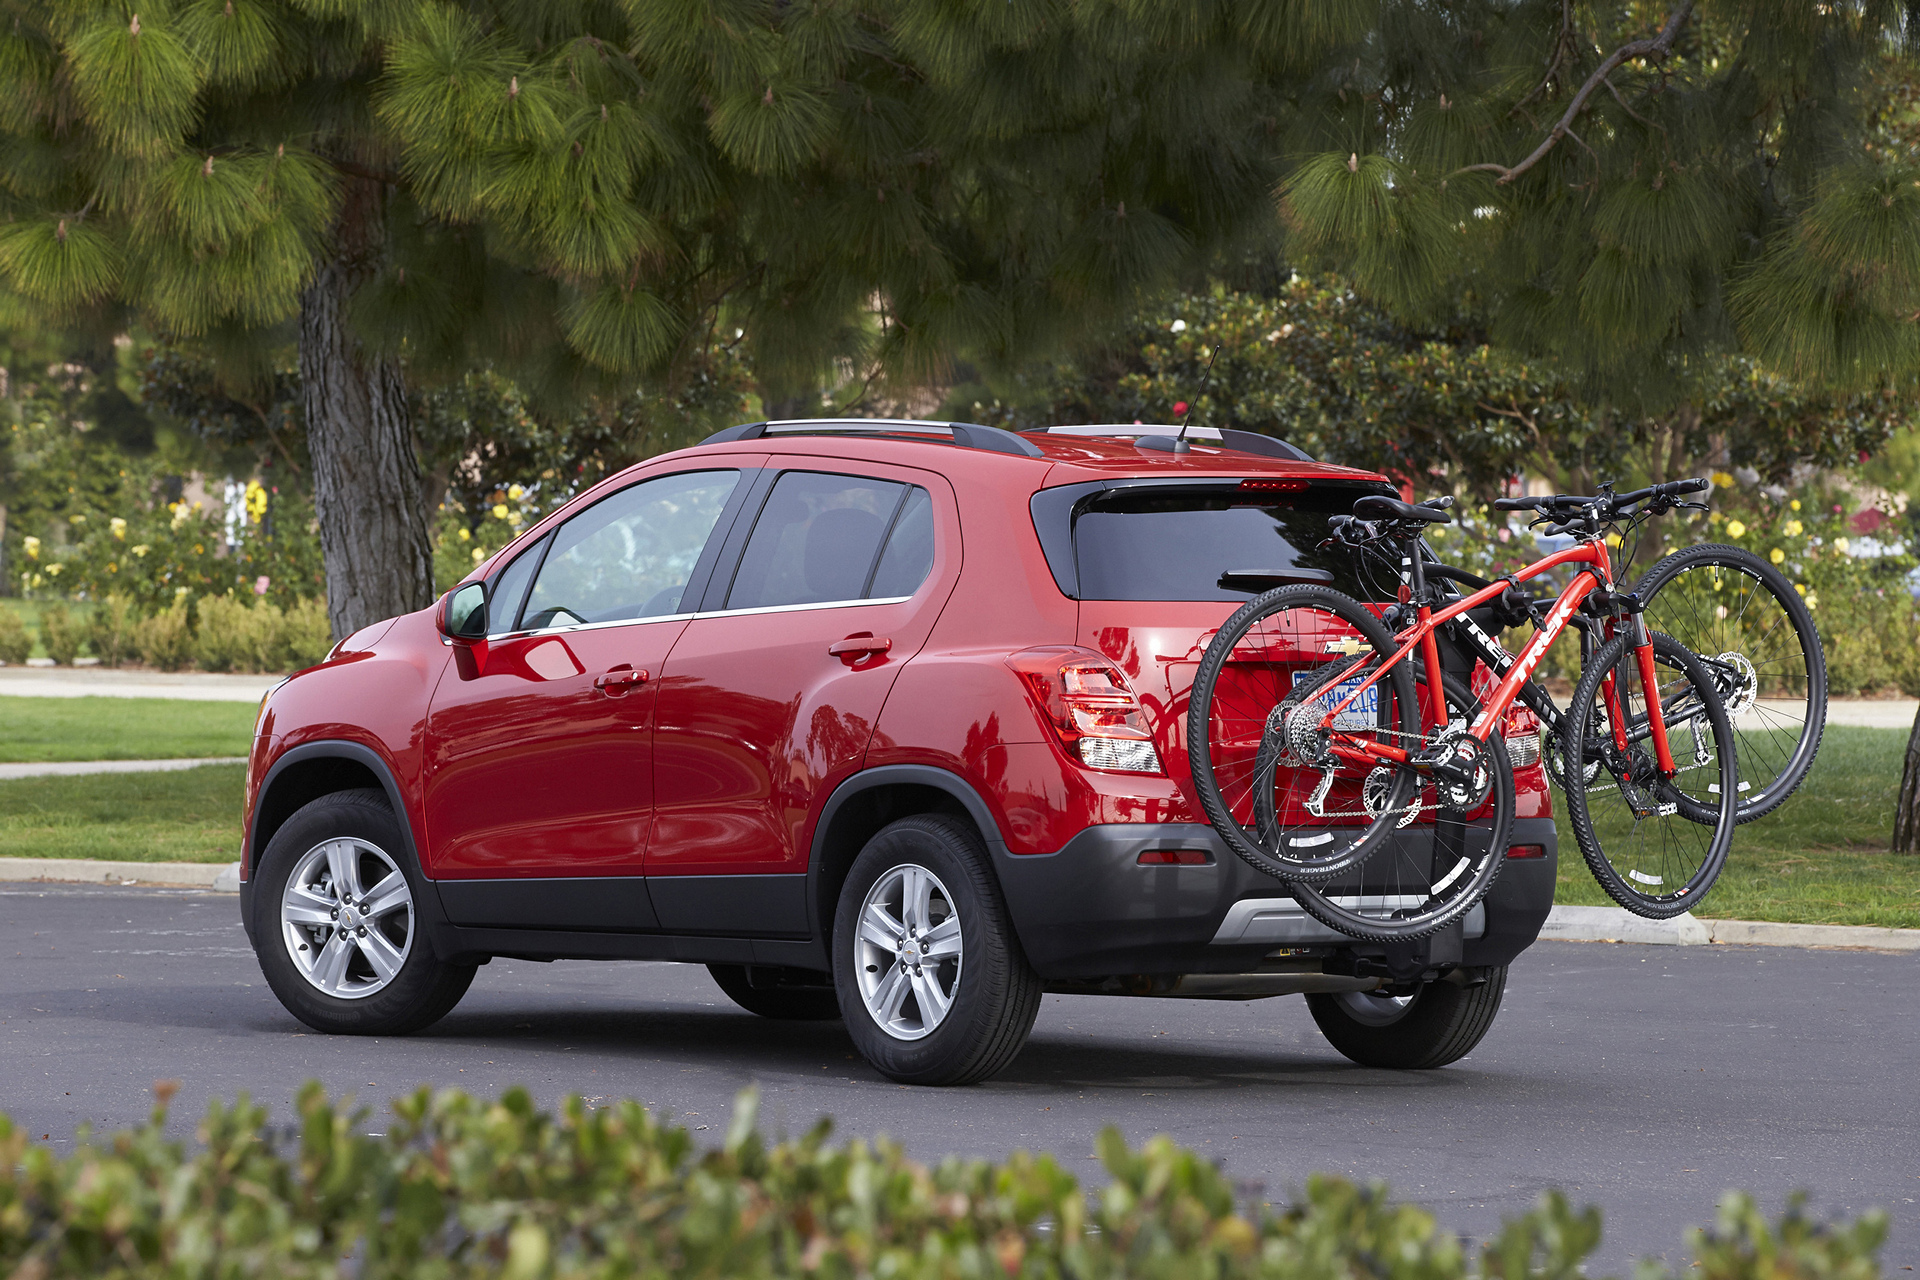 2016 Chevrolet Trax Review - Carrrs Auto Portal